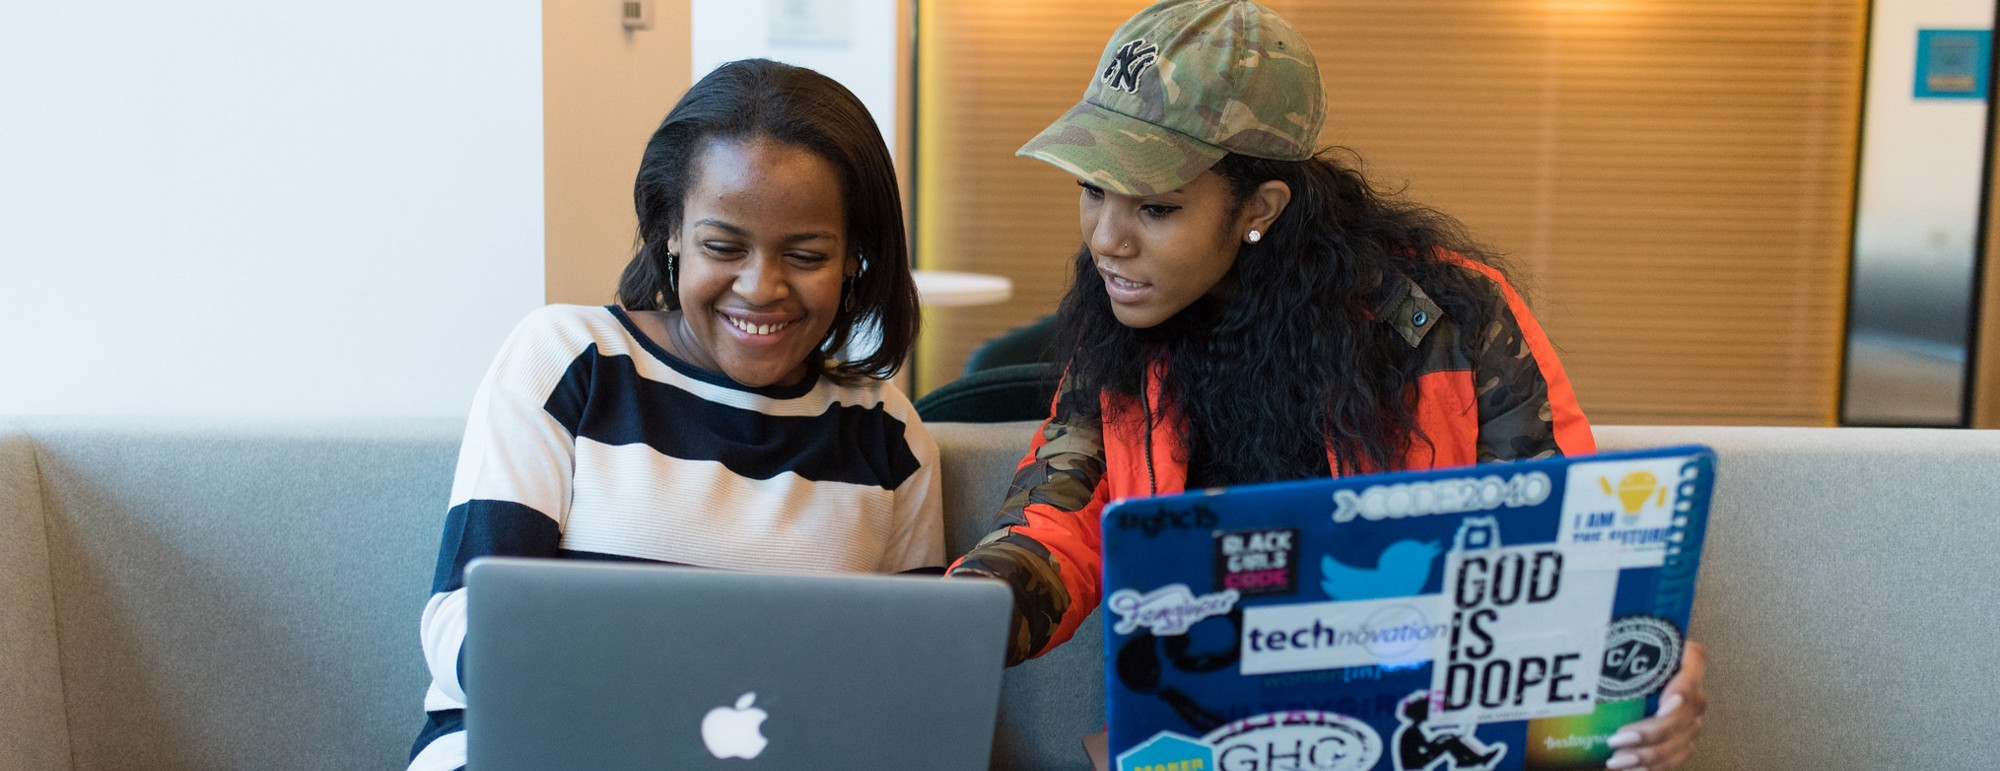 Tech Inclusion Solution: Day 39: Create Executive Mentoring Opportunities Between Women and Young…